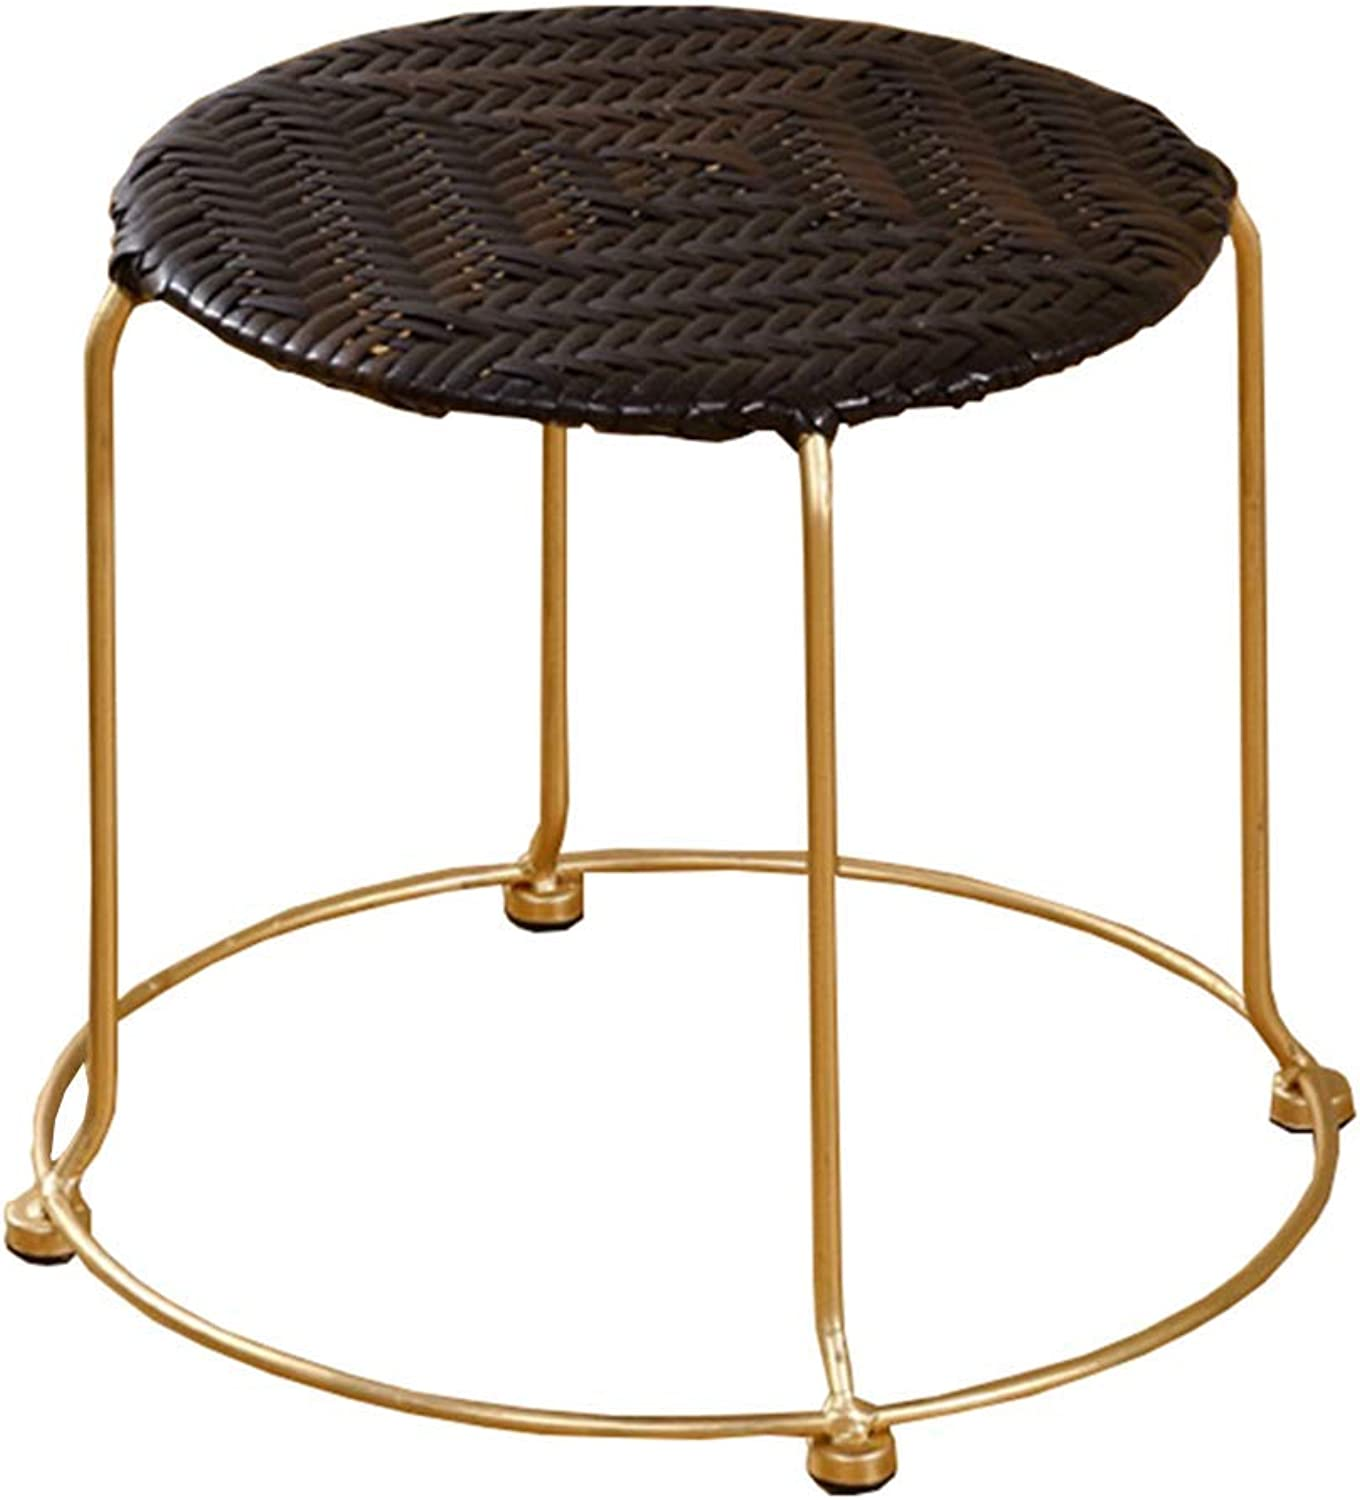 BBG Fashion Creative Small Furniture Anti-Slip Stool Light and Practical Plastic Rattan Small Round Stool Stackable Household Table Stool for shoes Bench Multifunction Household Creative